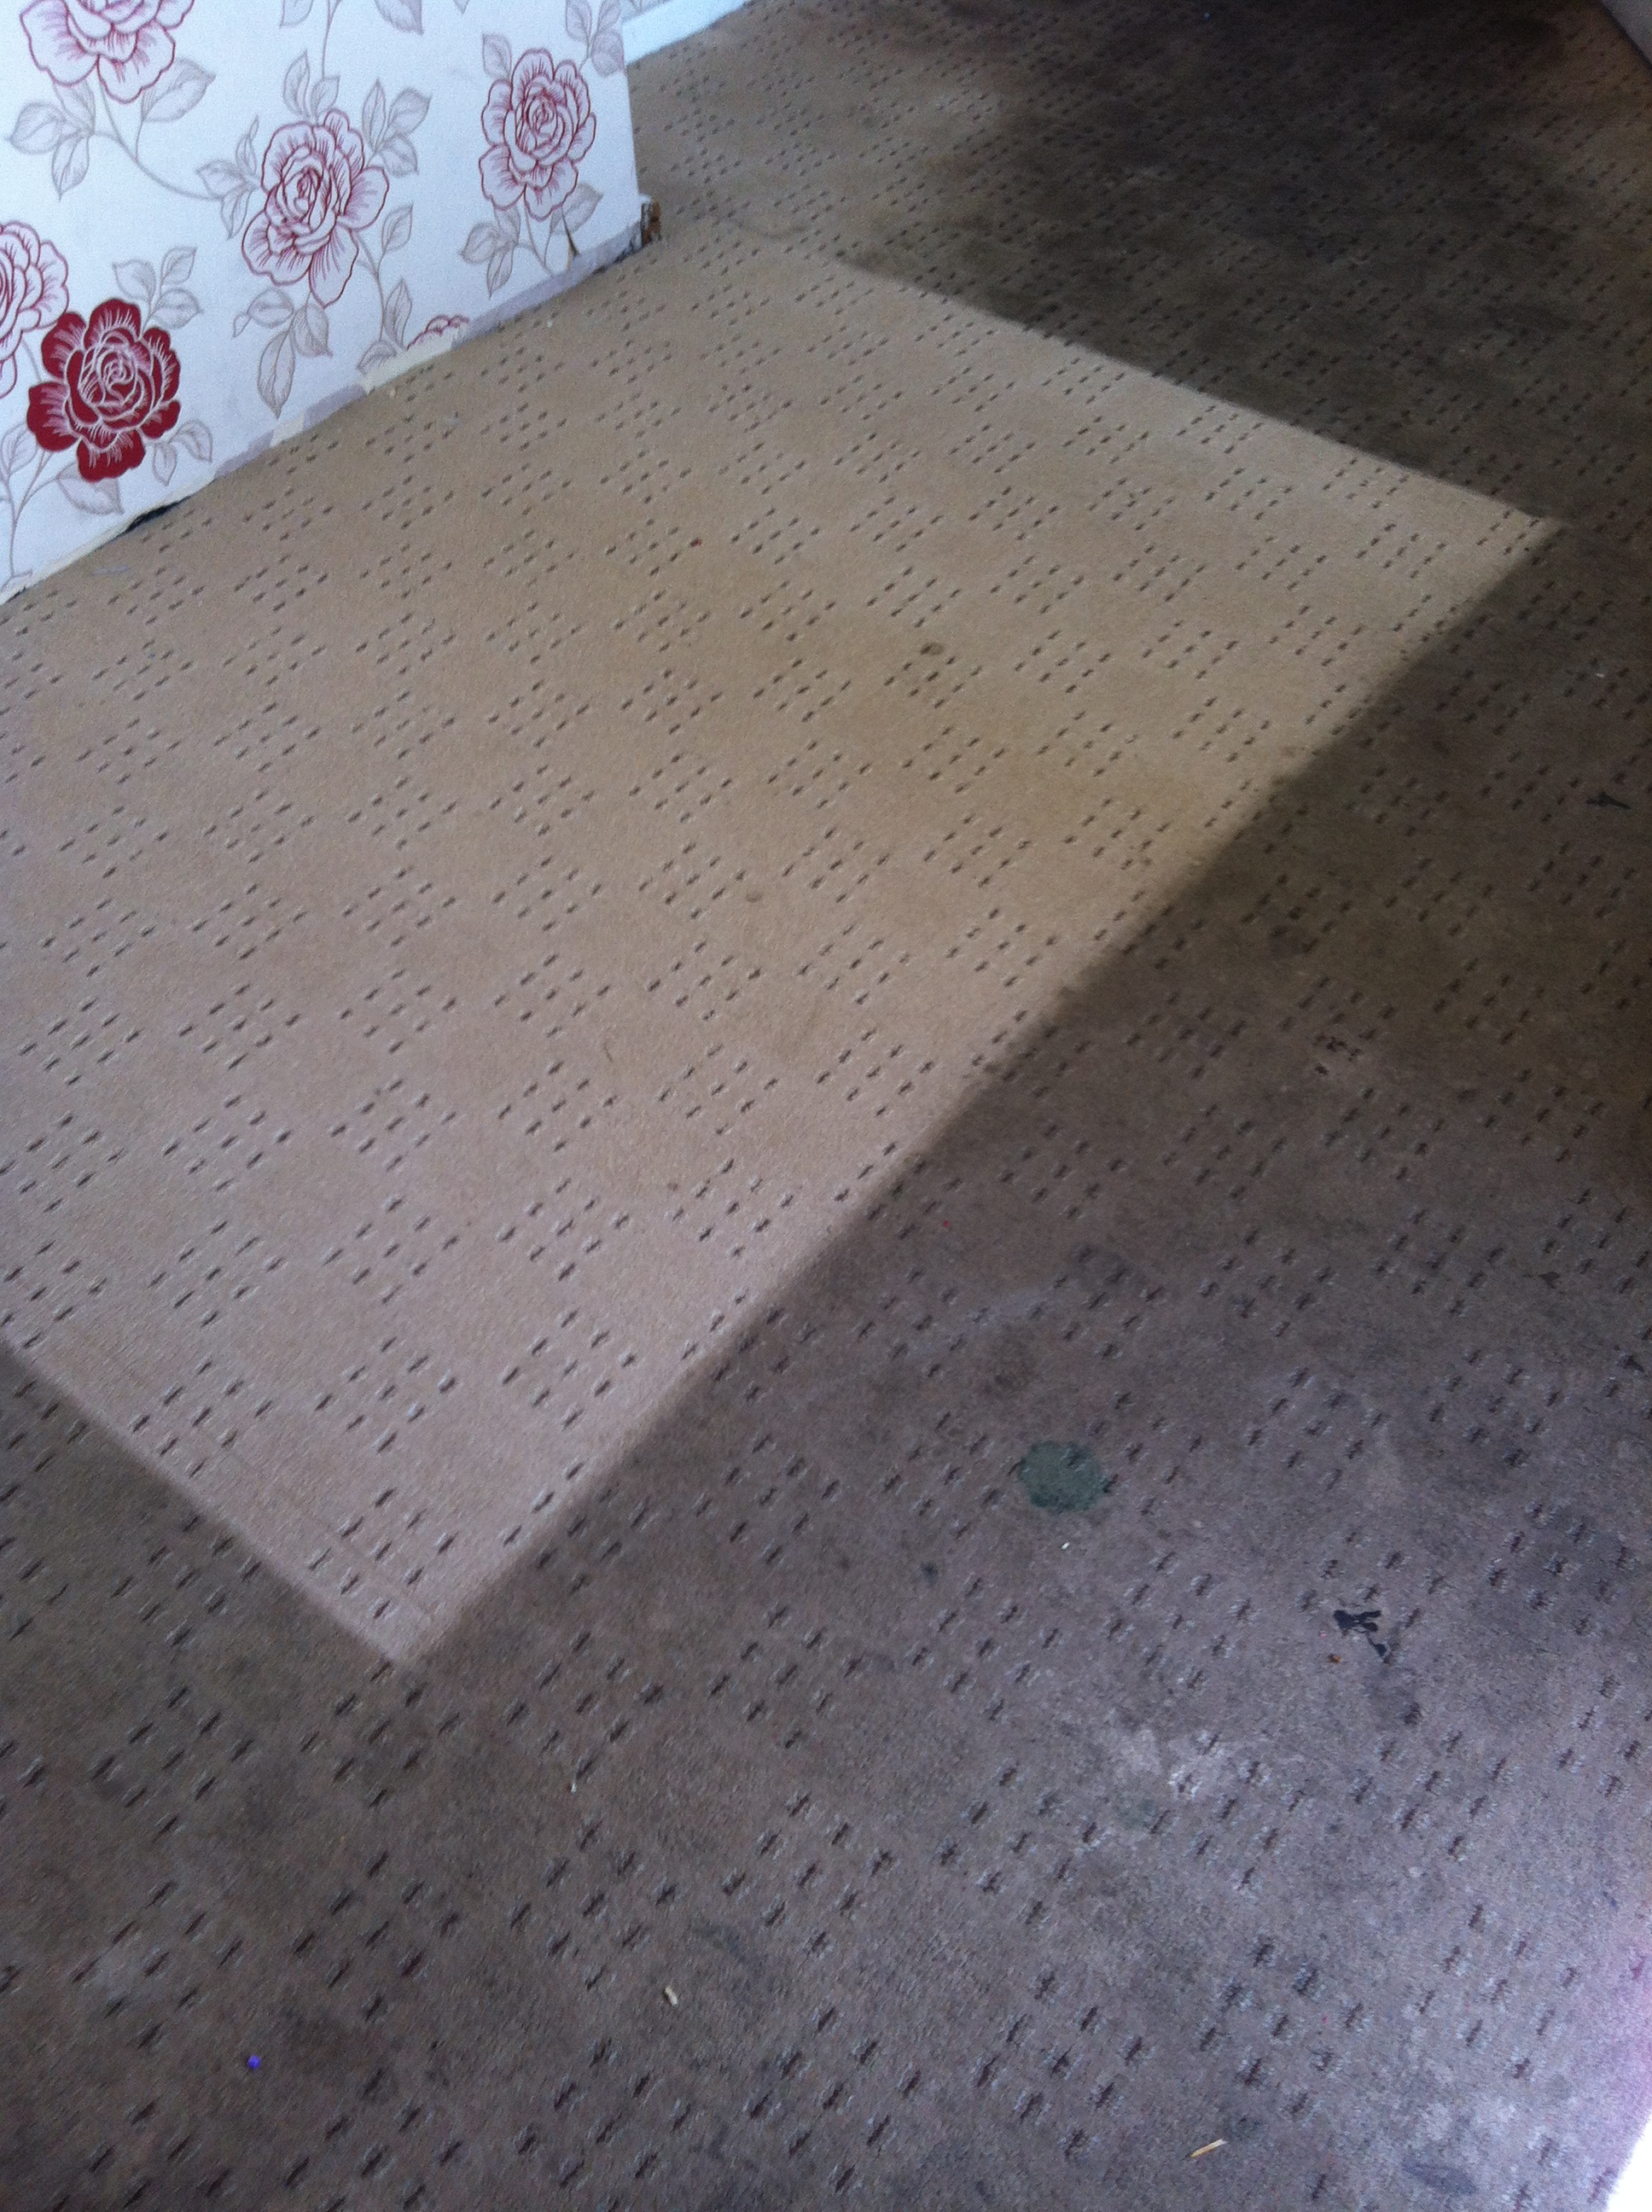 Rapid resoiling from using a Rug Doctor  Barnsley Carpet